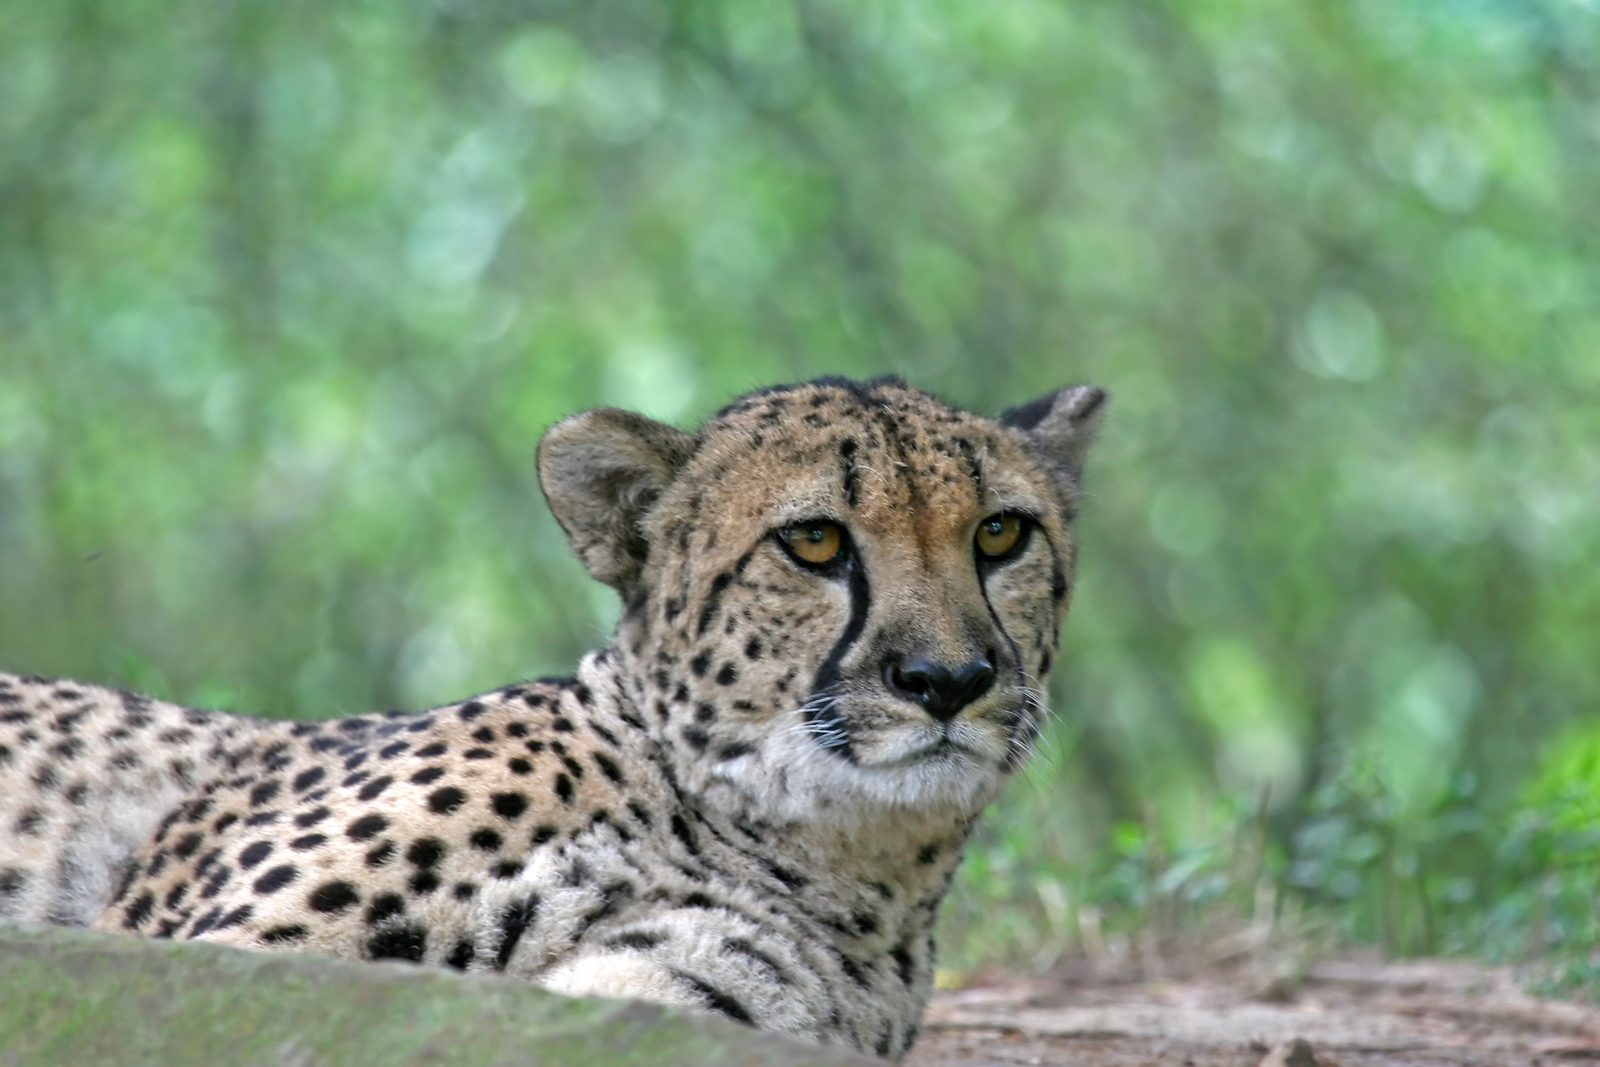 Cheetah laying down in a zoo watching alertly